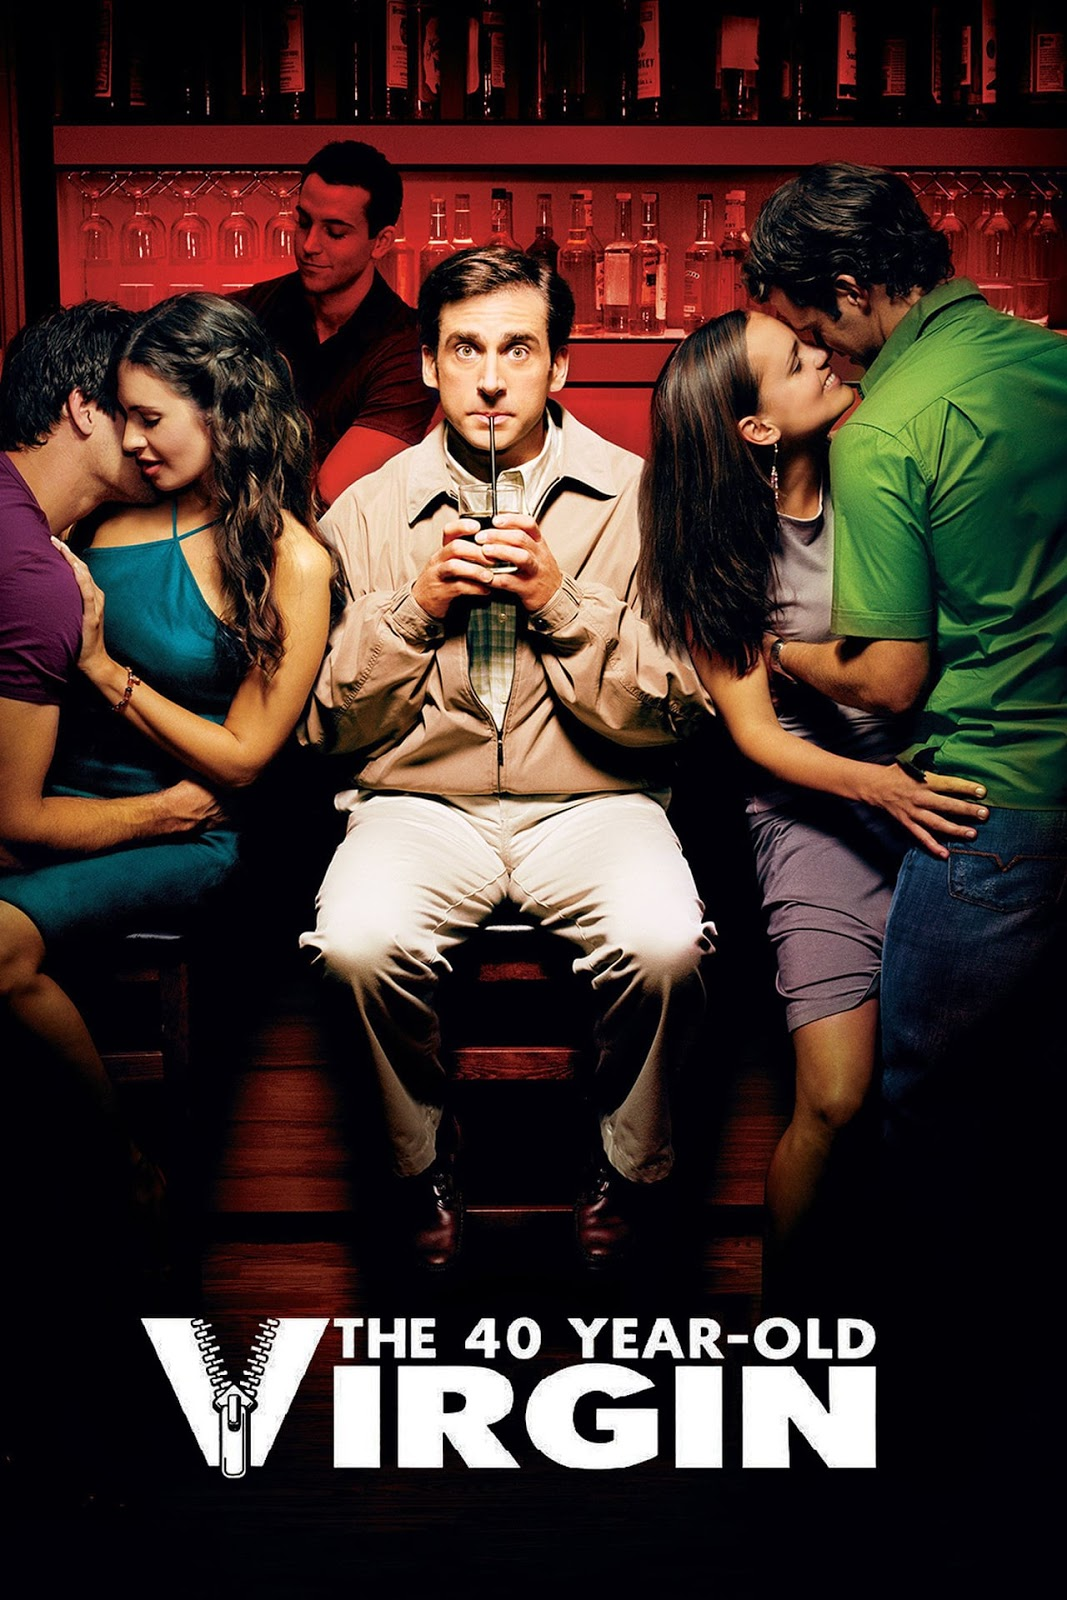 New Movies 2020 Download Download Latest Movies 2020 Filmyhit Filmywap Tamilrocks The 40 Year Old Virgin 2005